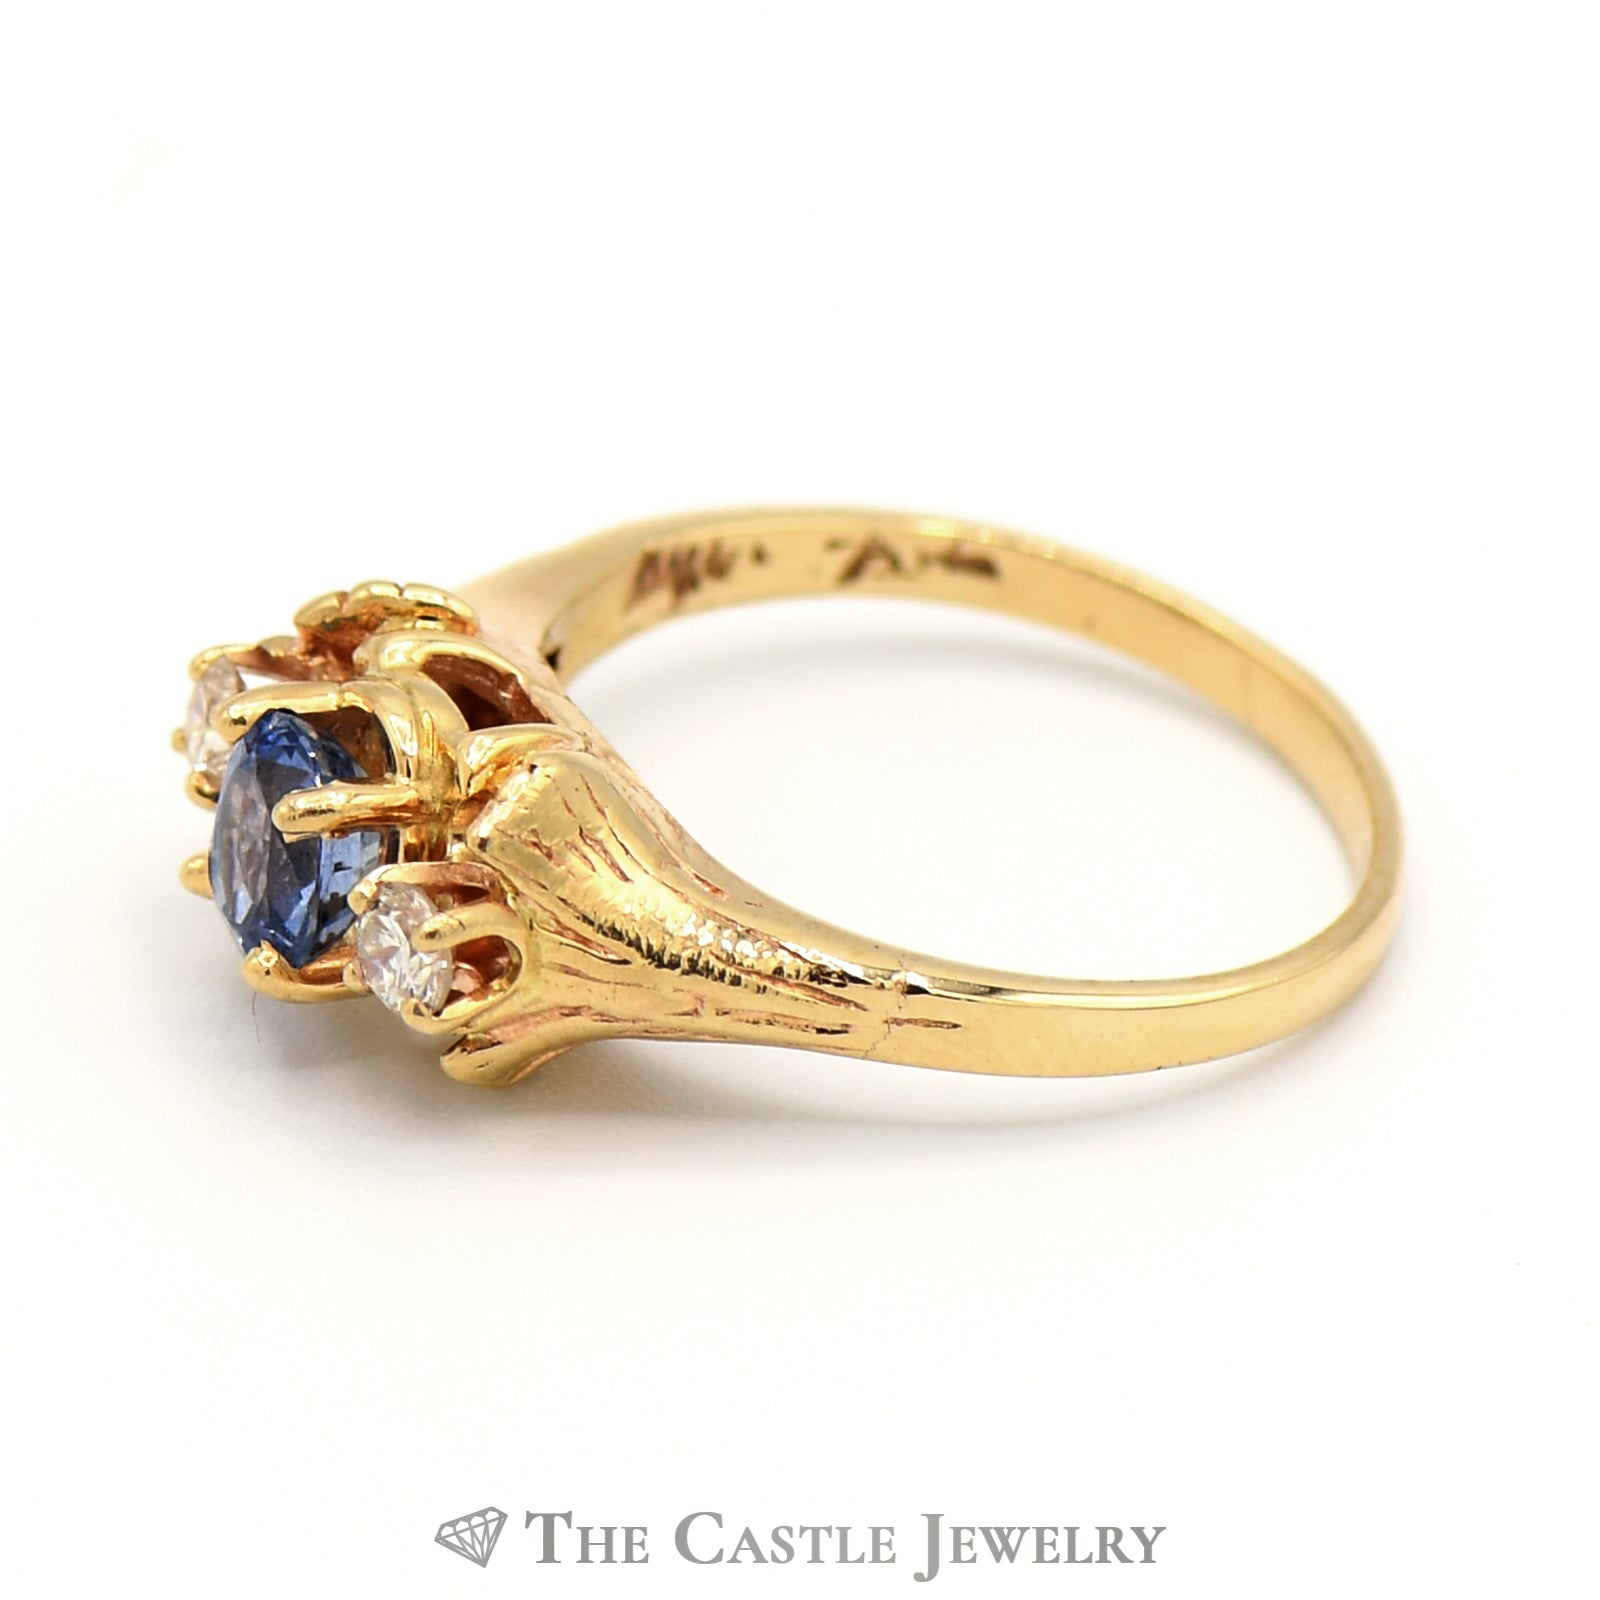 Light Blue Oval Sapphire Ring with Hints of Purple in 14K Gold